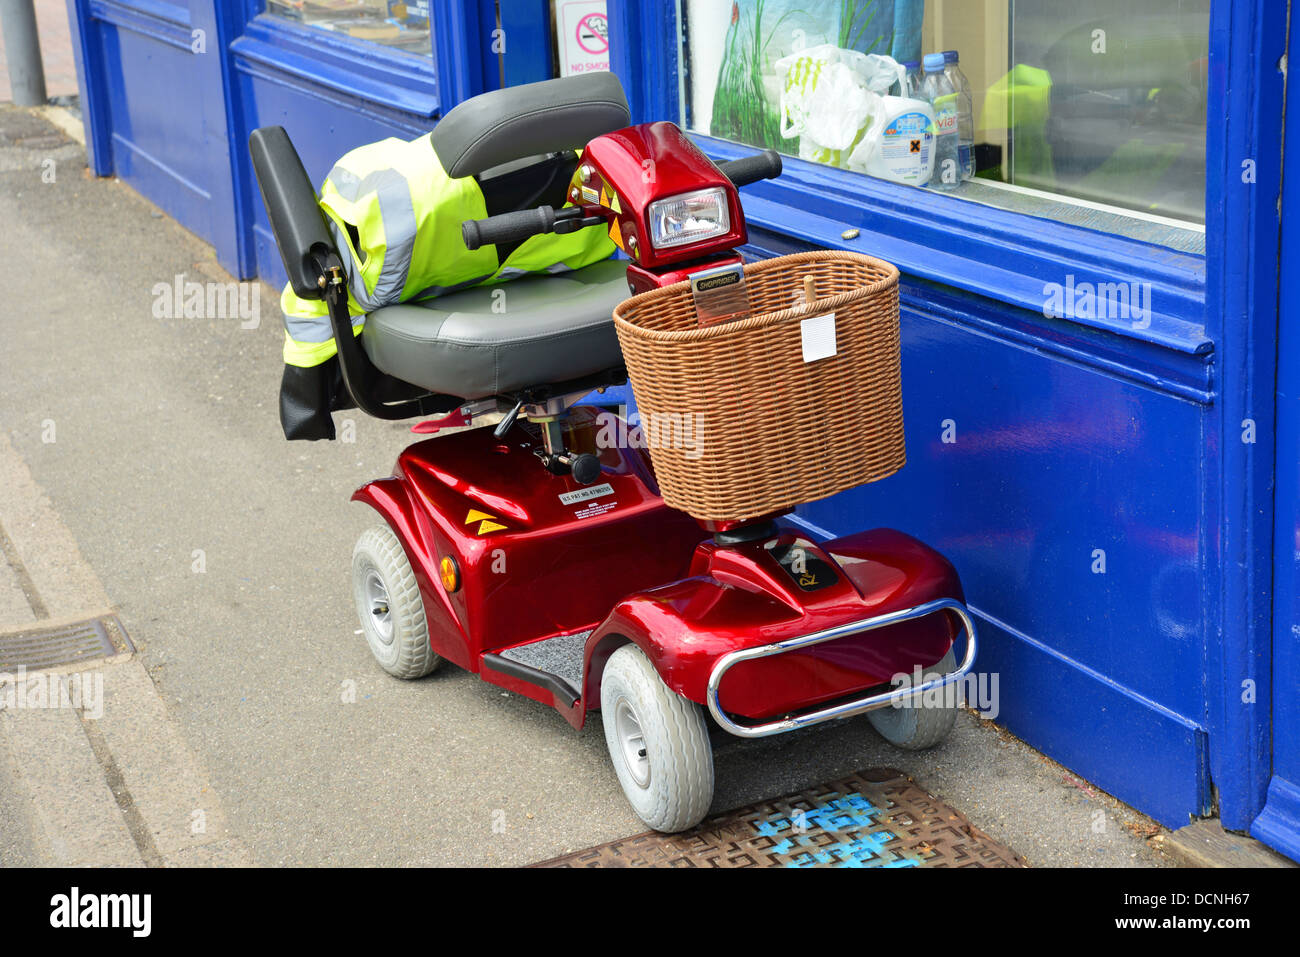 Mobility scooter outside shop, High Town, Hereford, Herefordshire, England, United Kingdom - Stock Image